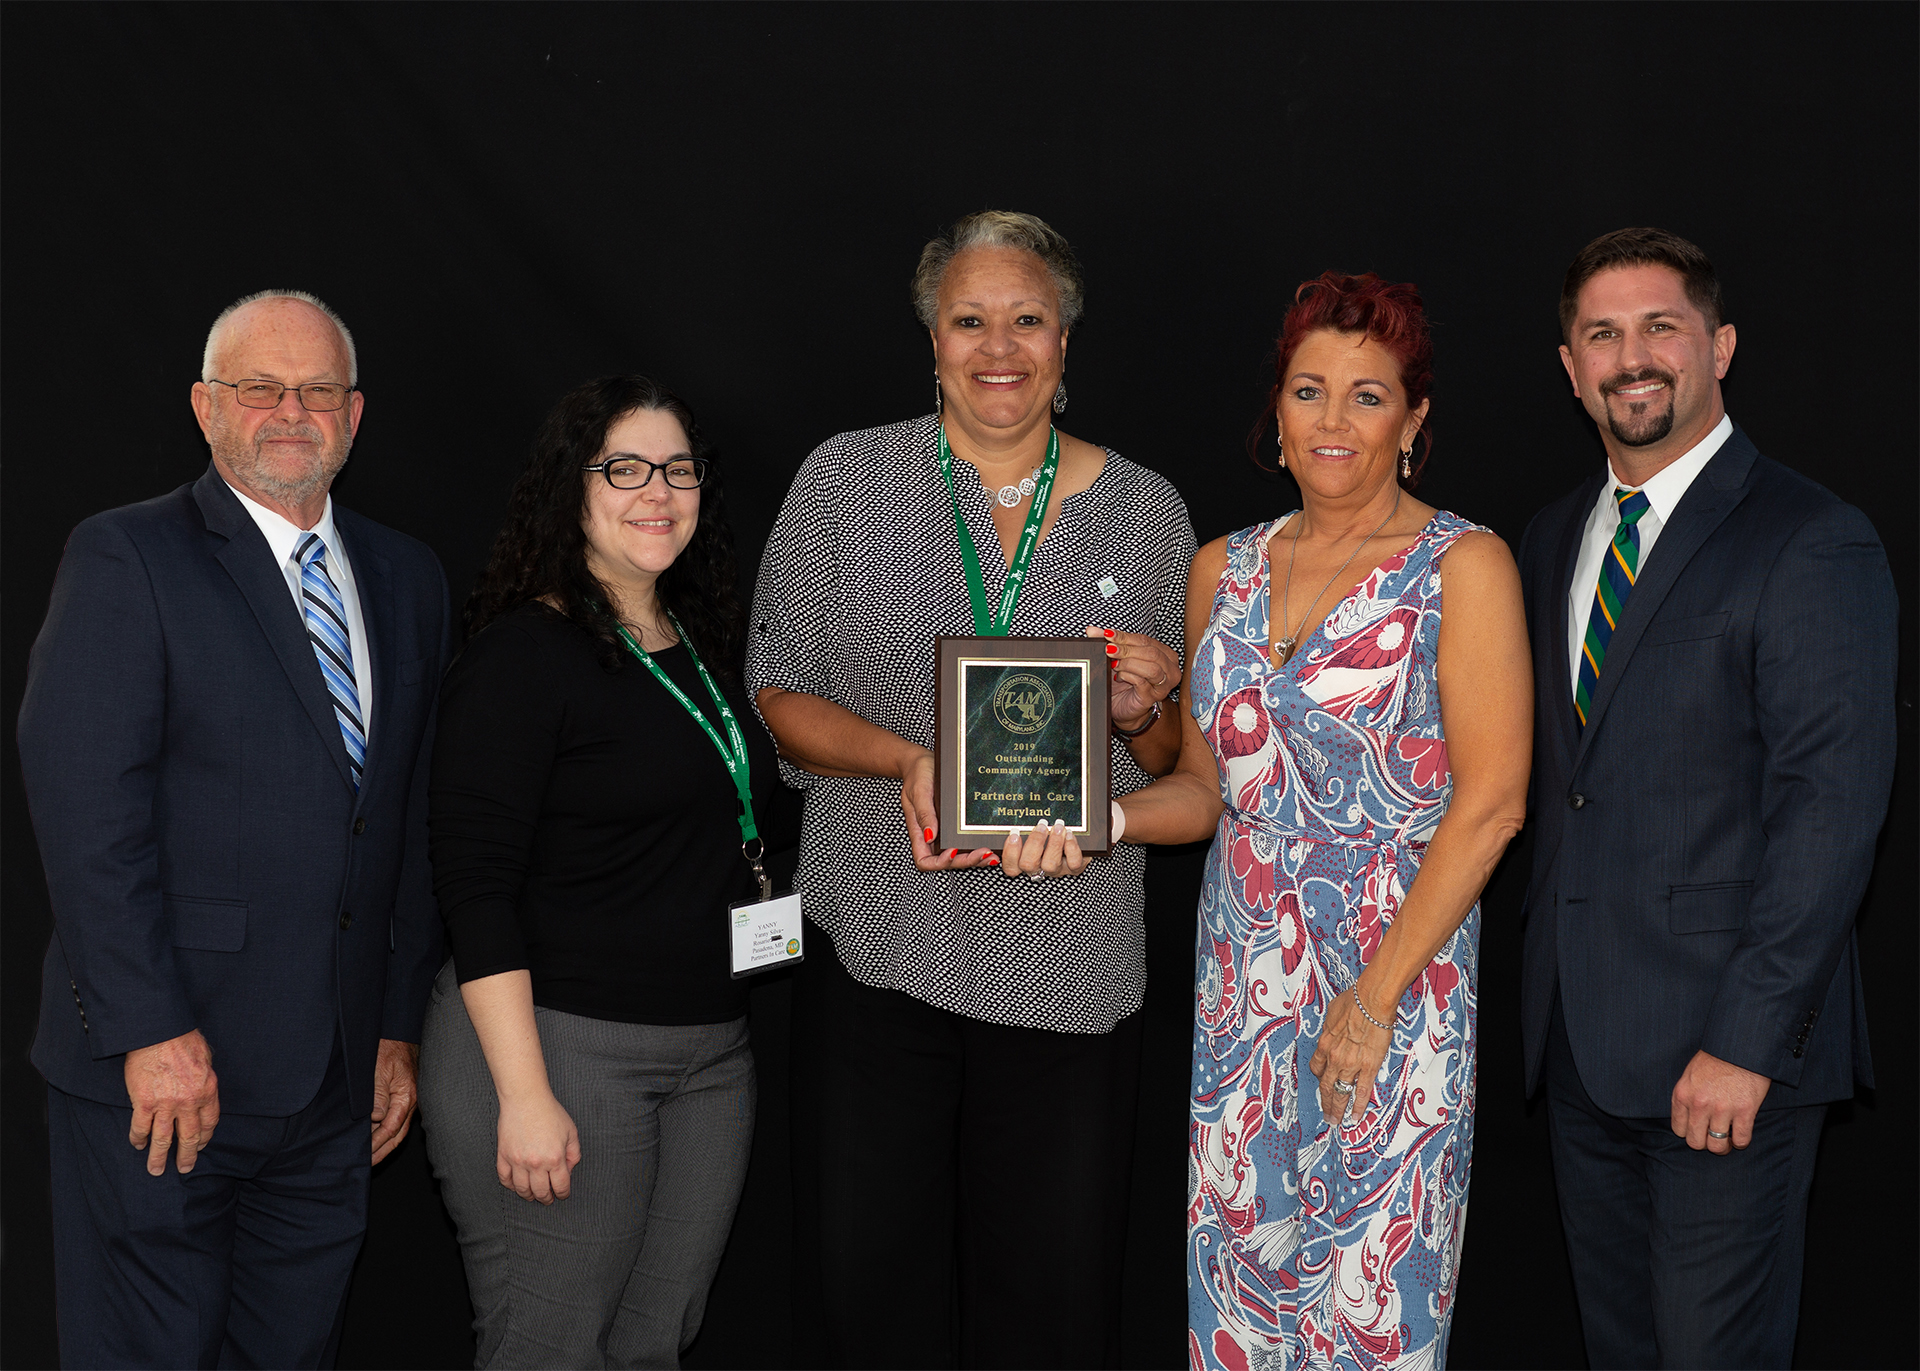 Partners in Care: Outstanding Community Agency 2019